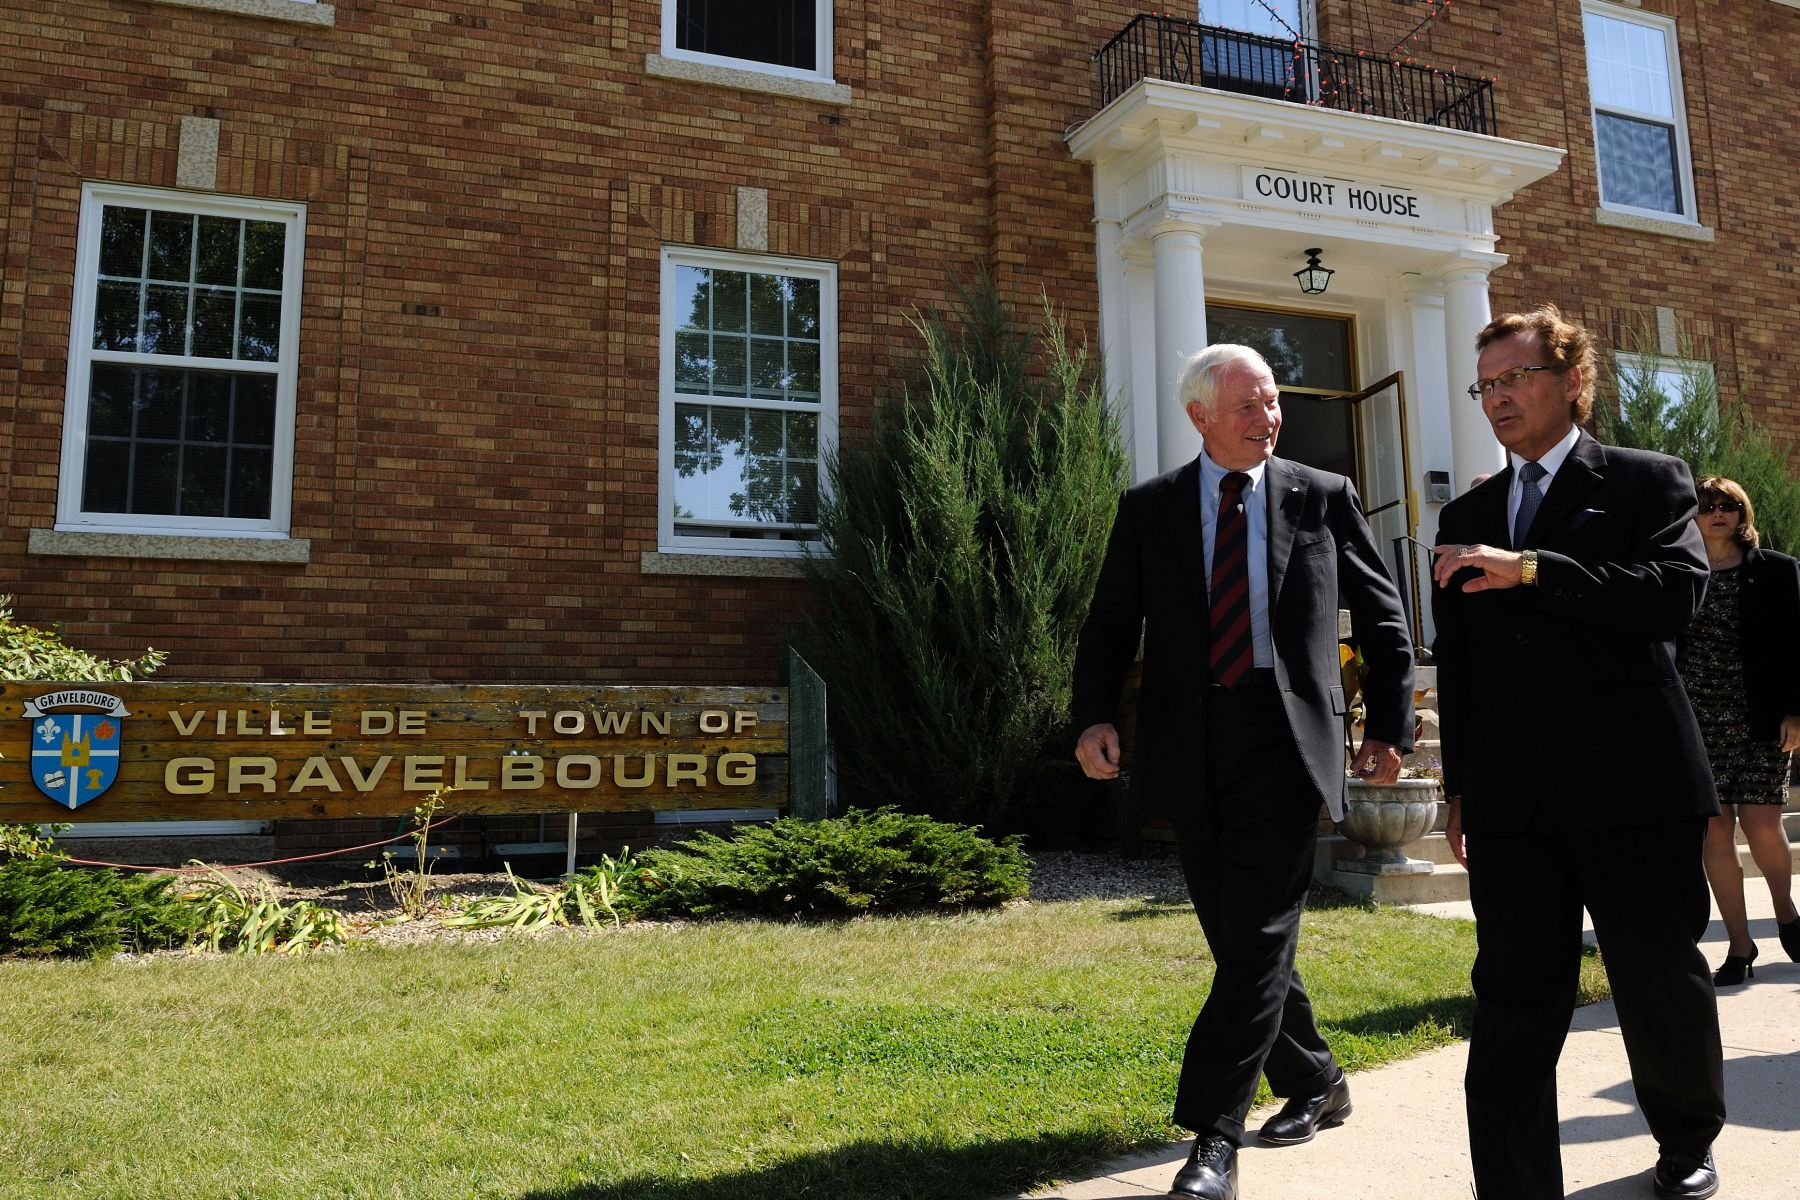 Before leaving Gravelbourg, His Excellency, accompanied by His Worship Réal Forest, conducted a tour of the town and visited the beautiful cathedral.